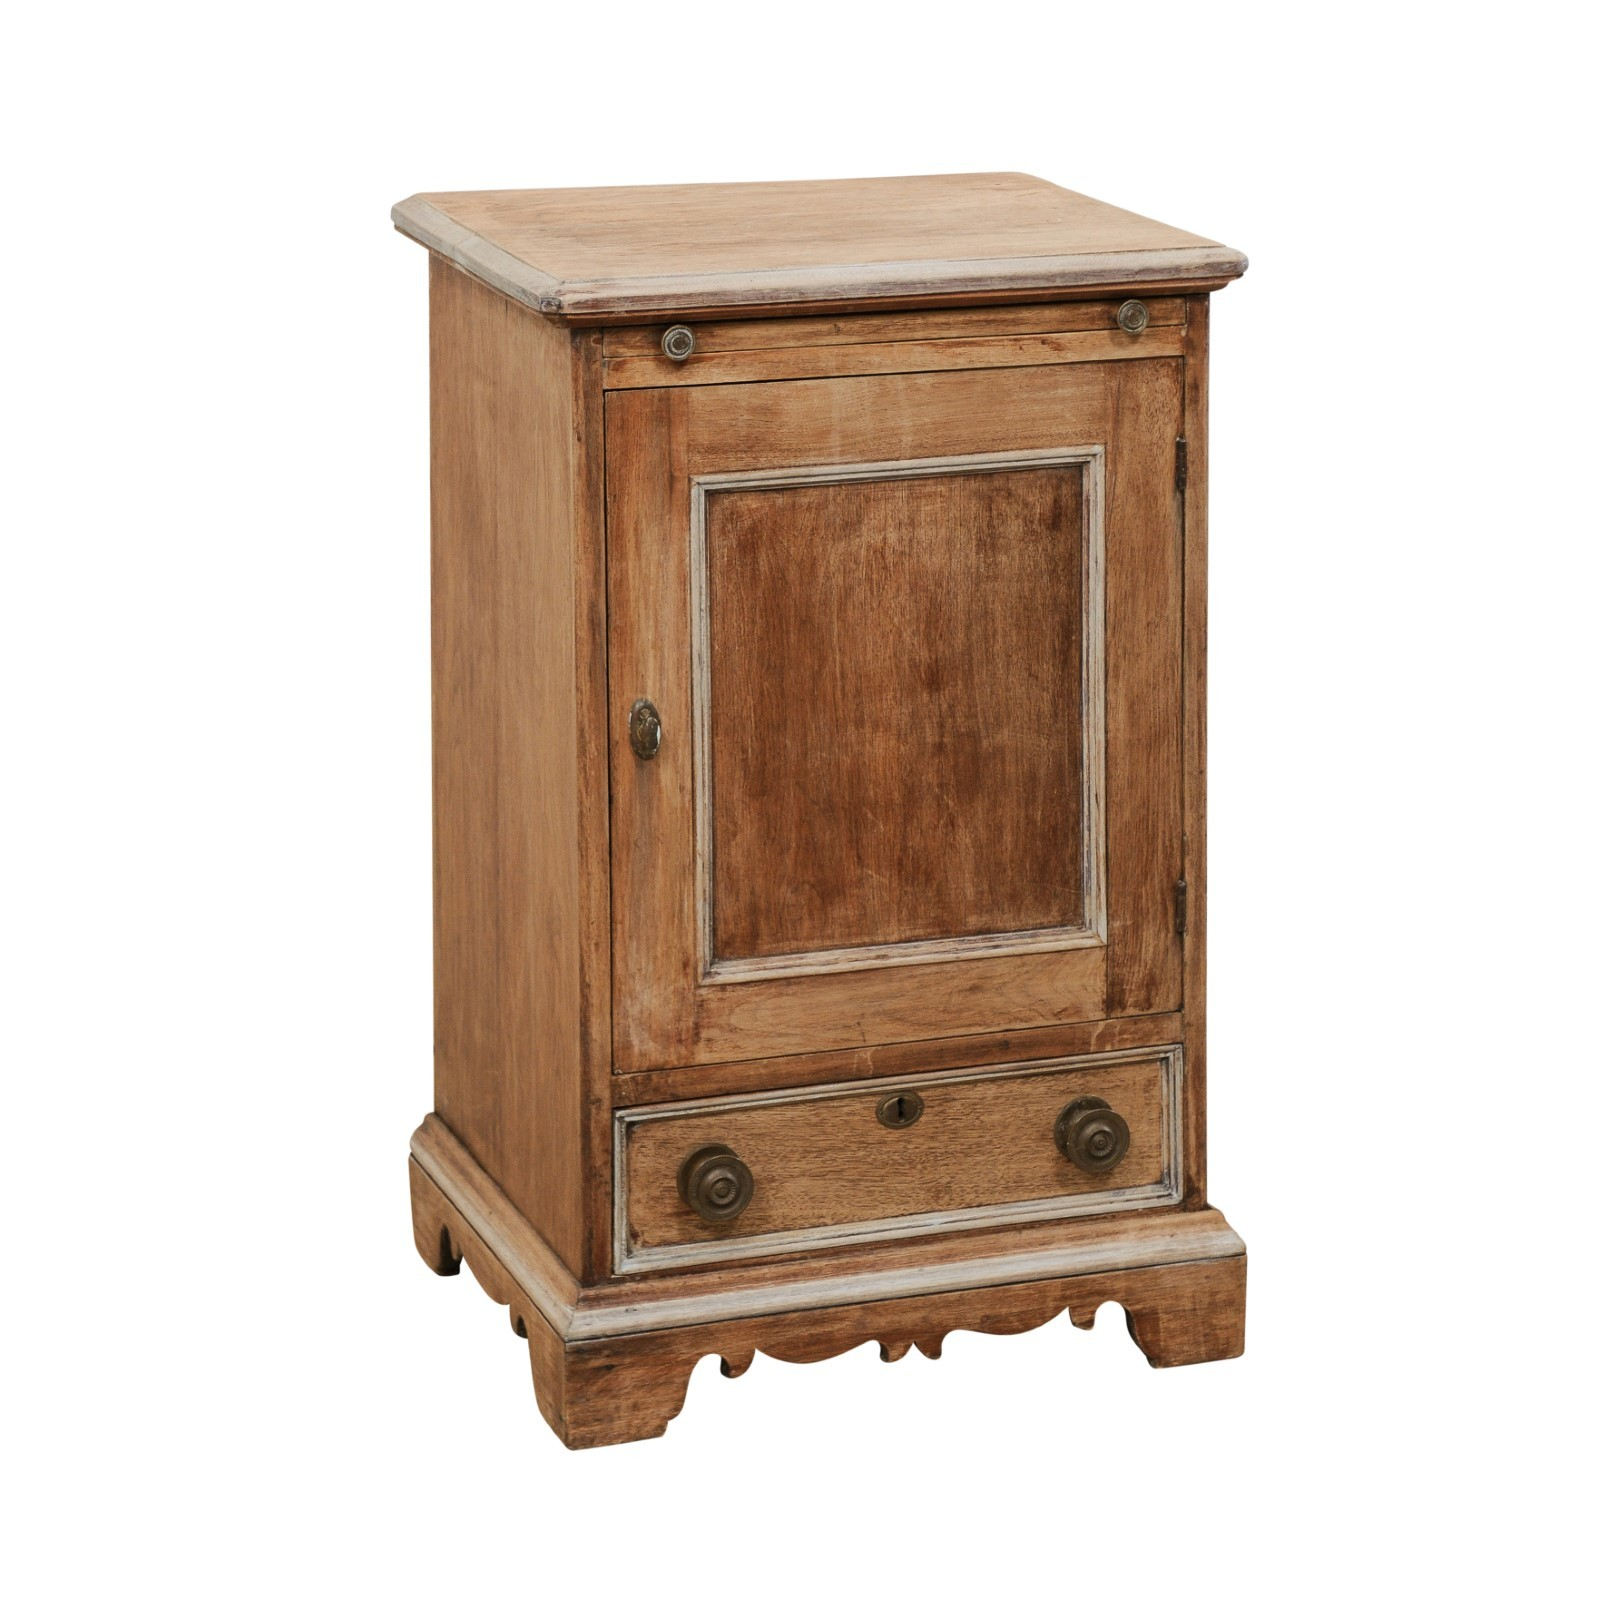 Petite Wood Storage Cabinet, 19th C. Italy